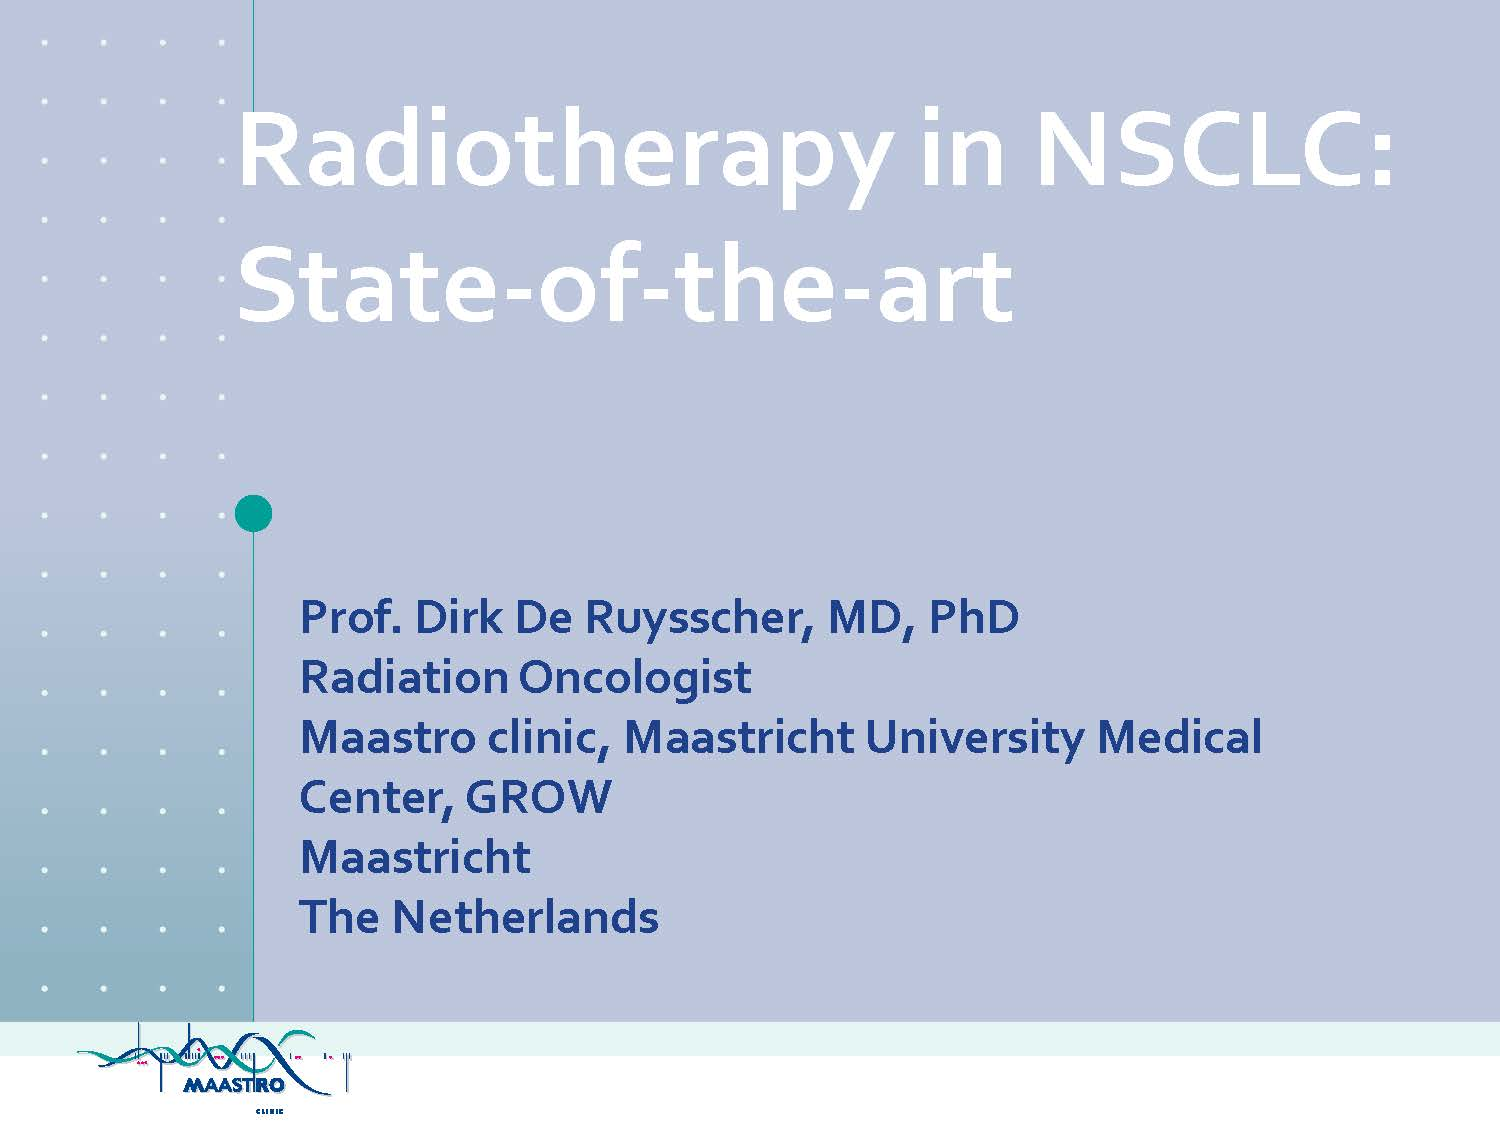 9. State of the art radiotherapy for lung cancer, Dirk de Ruysscher